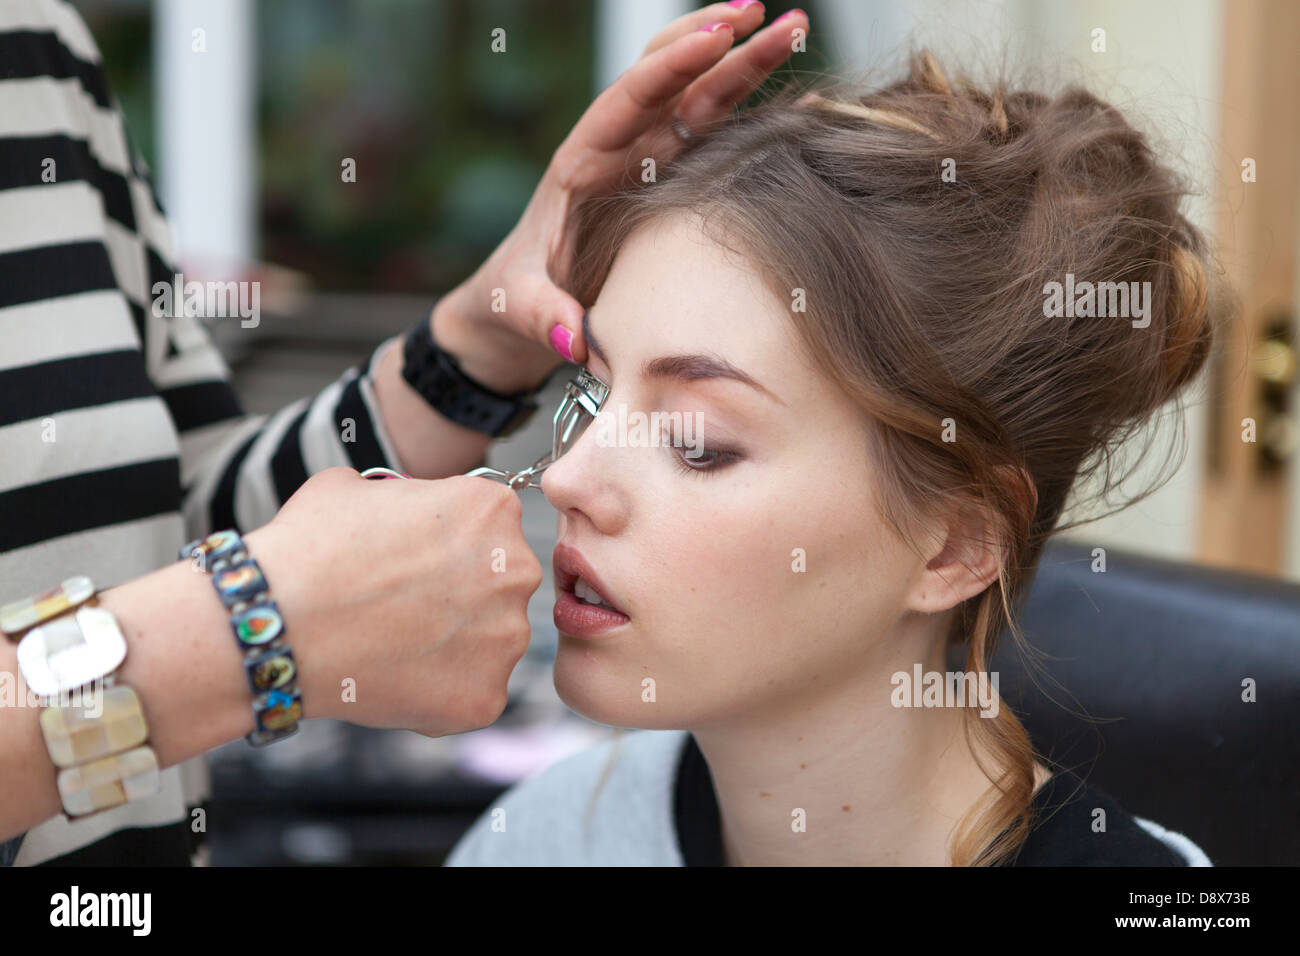 Young woman in a make-up studio - Stock Image